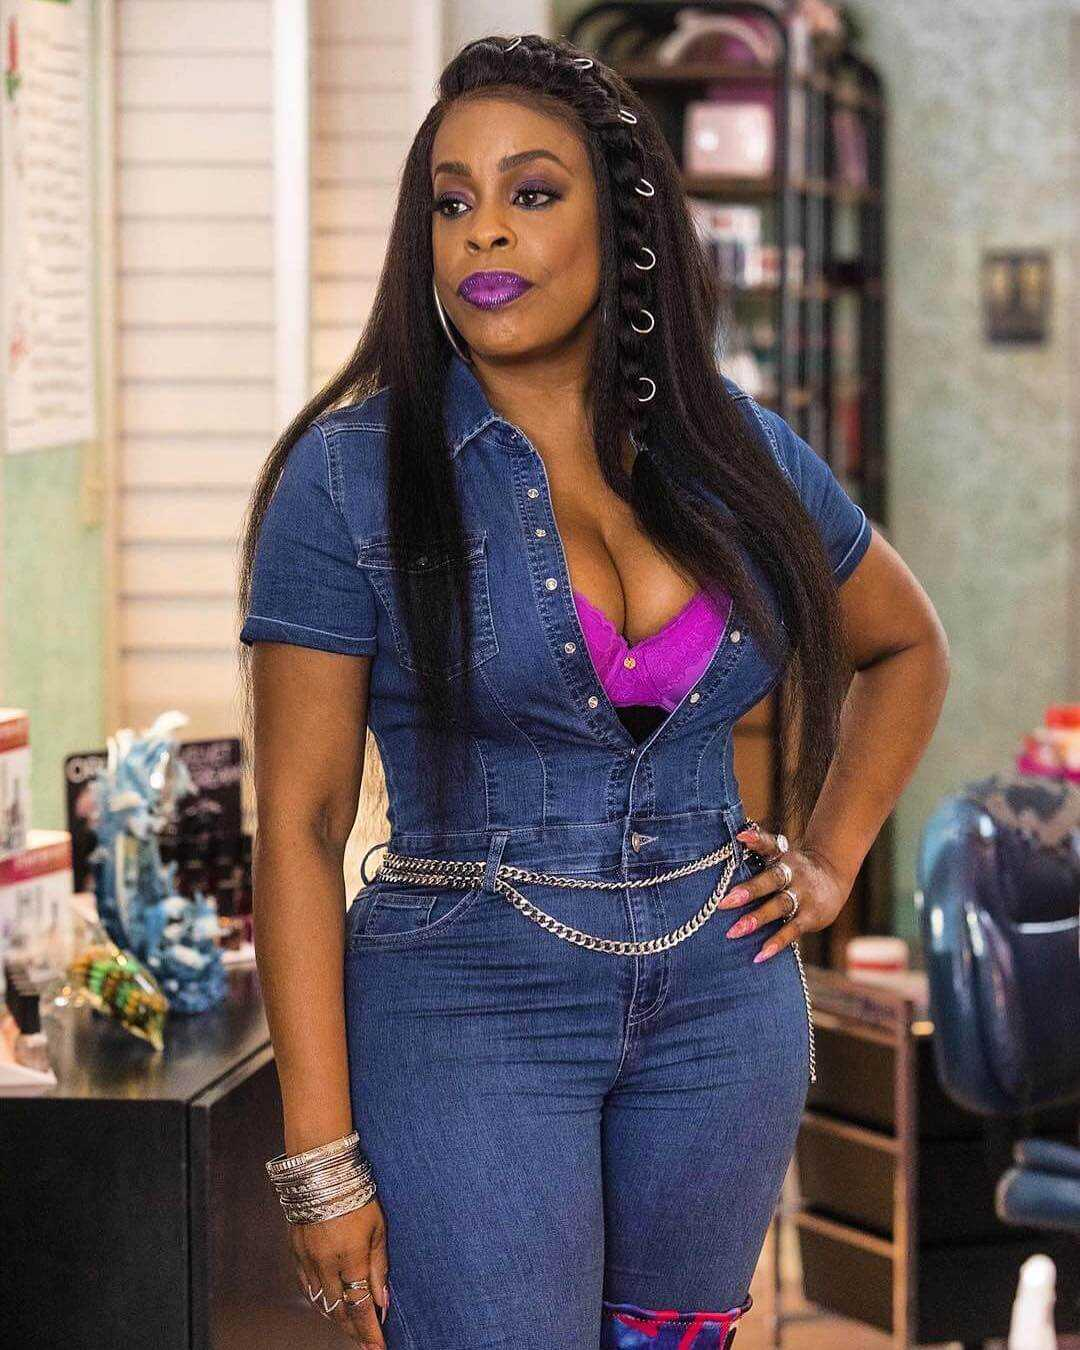 61 Niecy Nash Sexy Pictures Are Gorgeously Attractive - GEEKS ON COFFEE